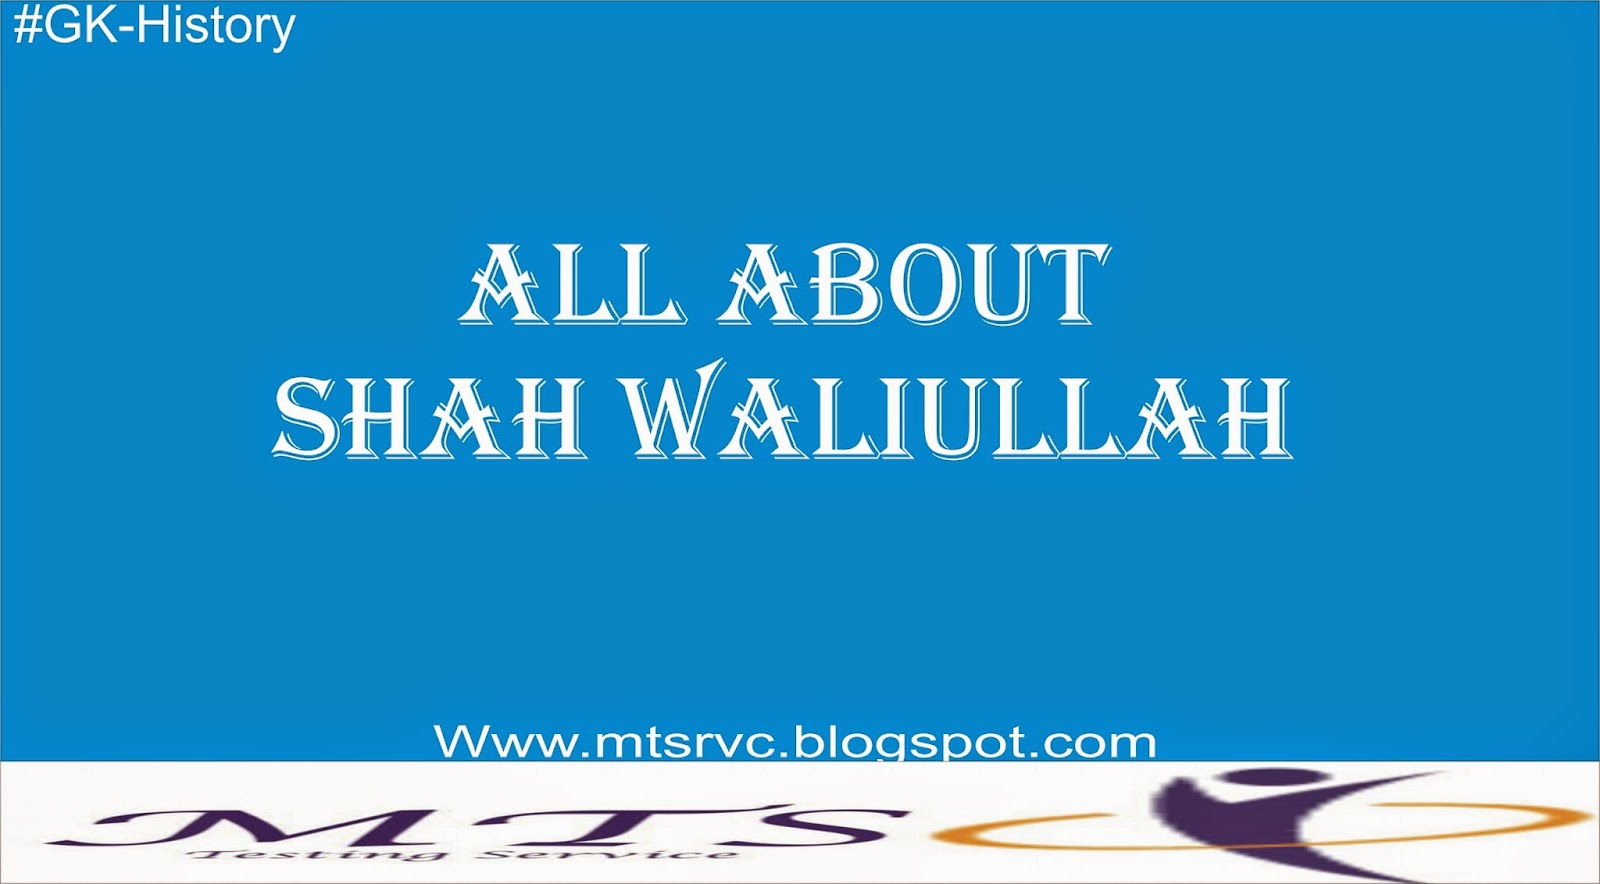 shah walliullah View the profiles of professionals named shah waliullah on linkedin there are 10+ professionals named shah waliullah, who use linkedin to exchange information, ideas, and opportunities.